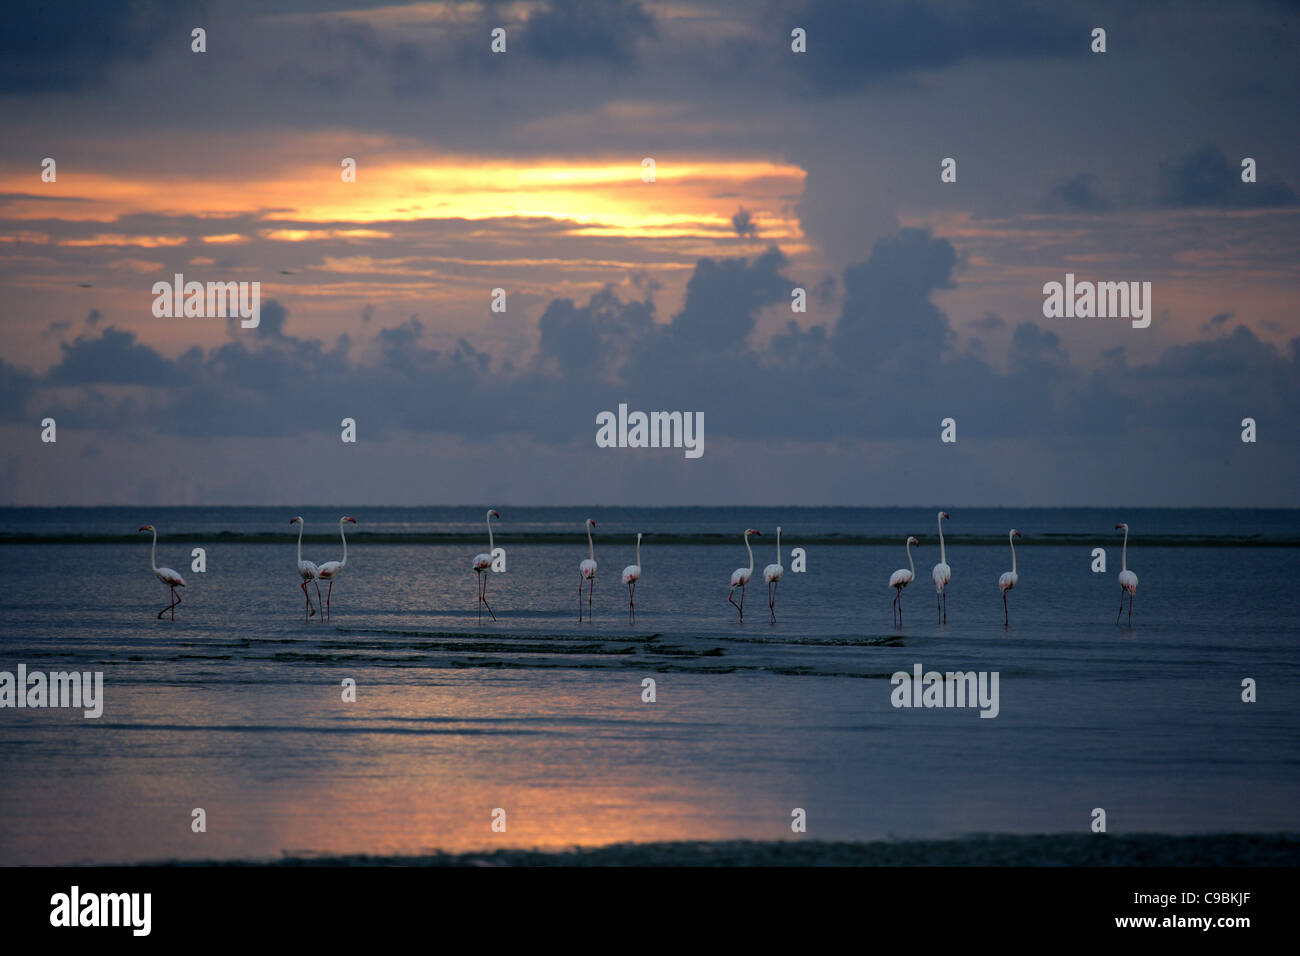 Africa, Guinea-Bissau, Flamingos in water at sunset - Stock Image